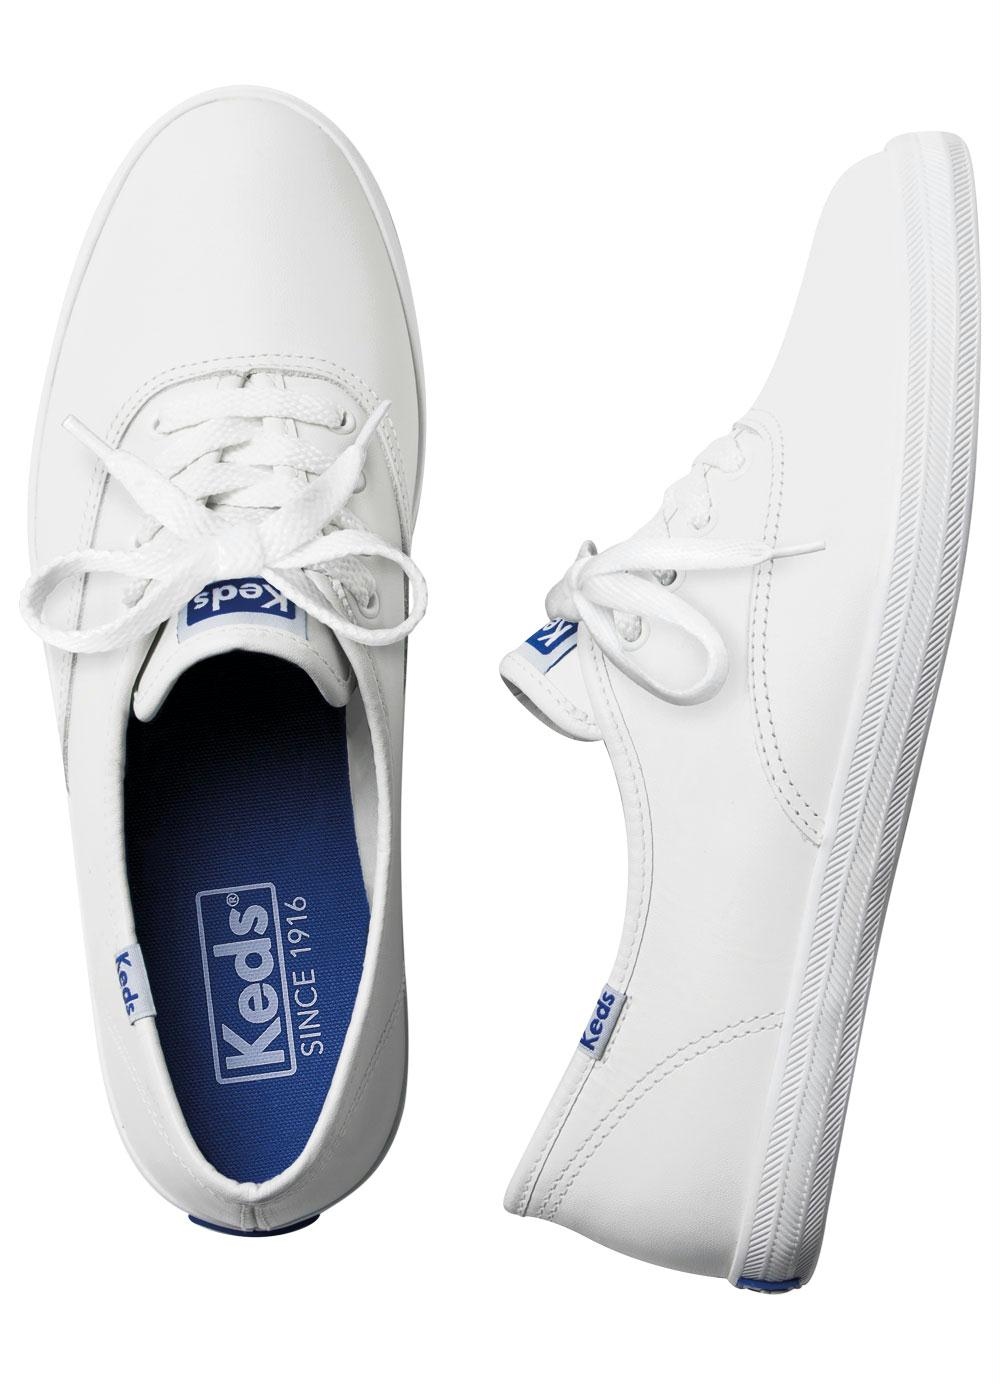 7fb3ac27aa4f4 Tênis Keds Champion Woman Leather Branco - Multimarcas